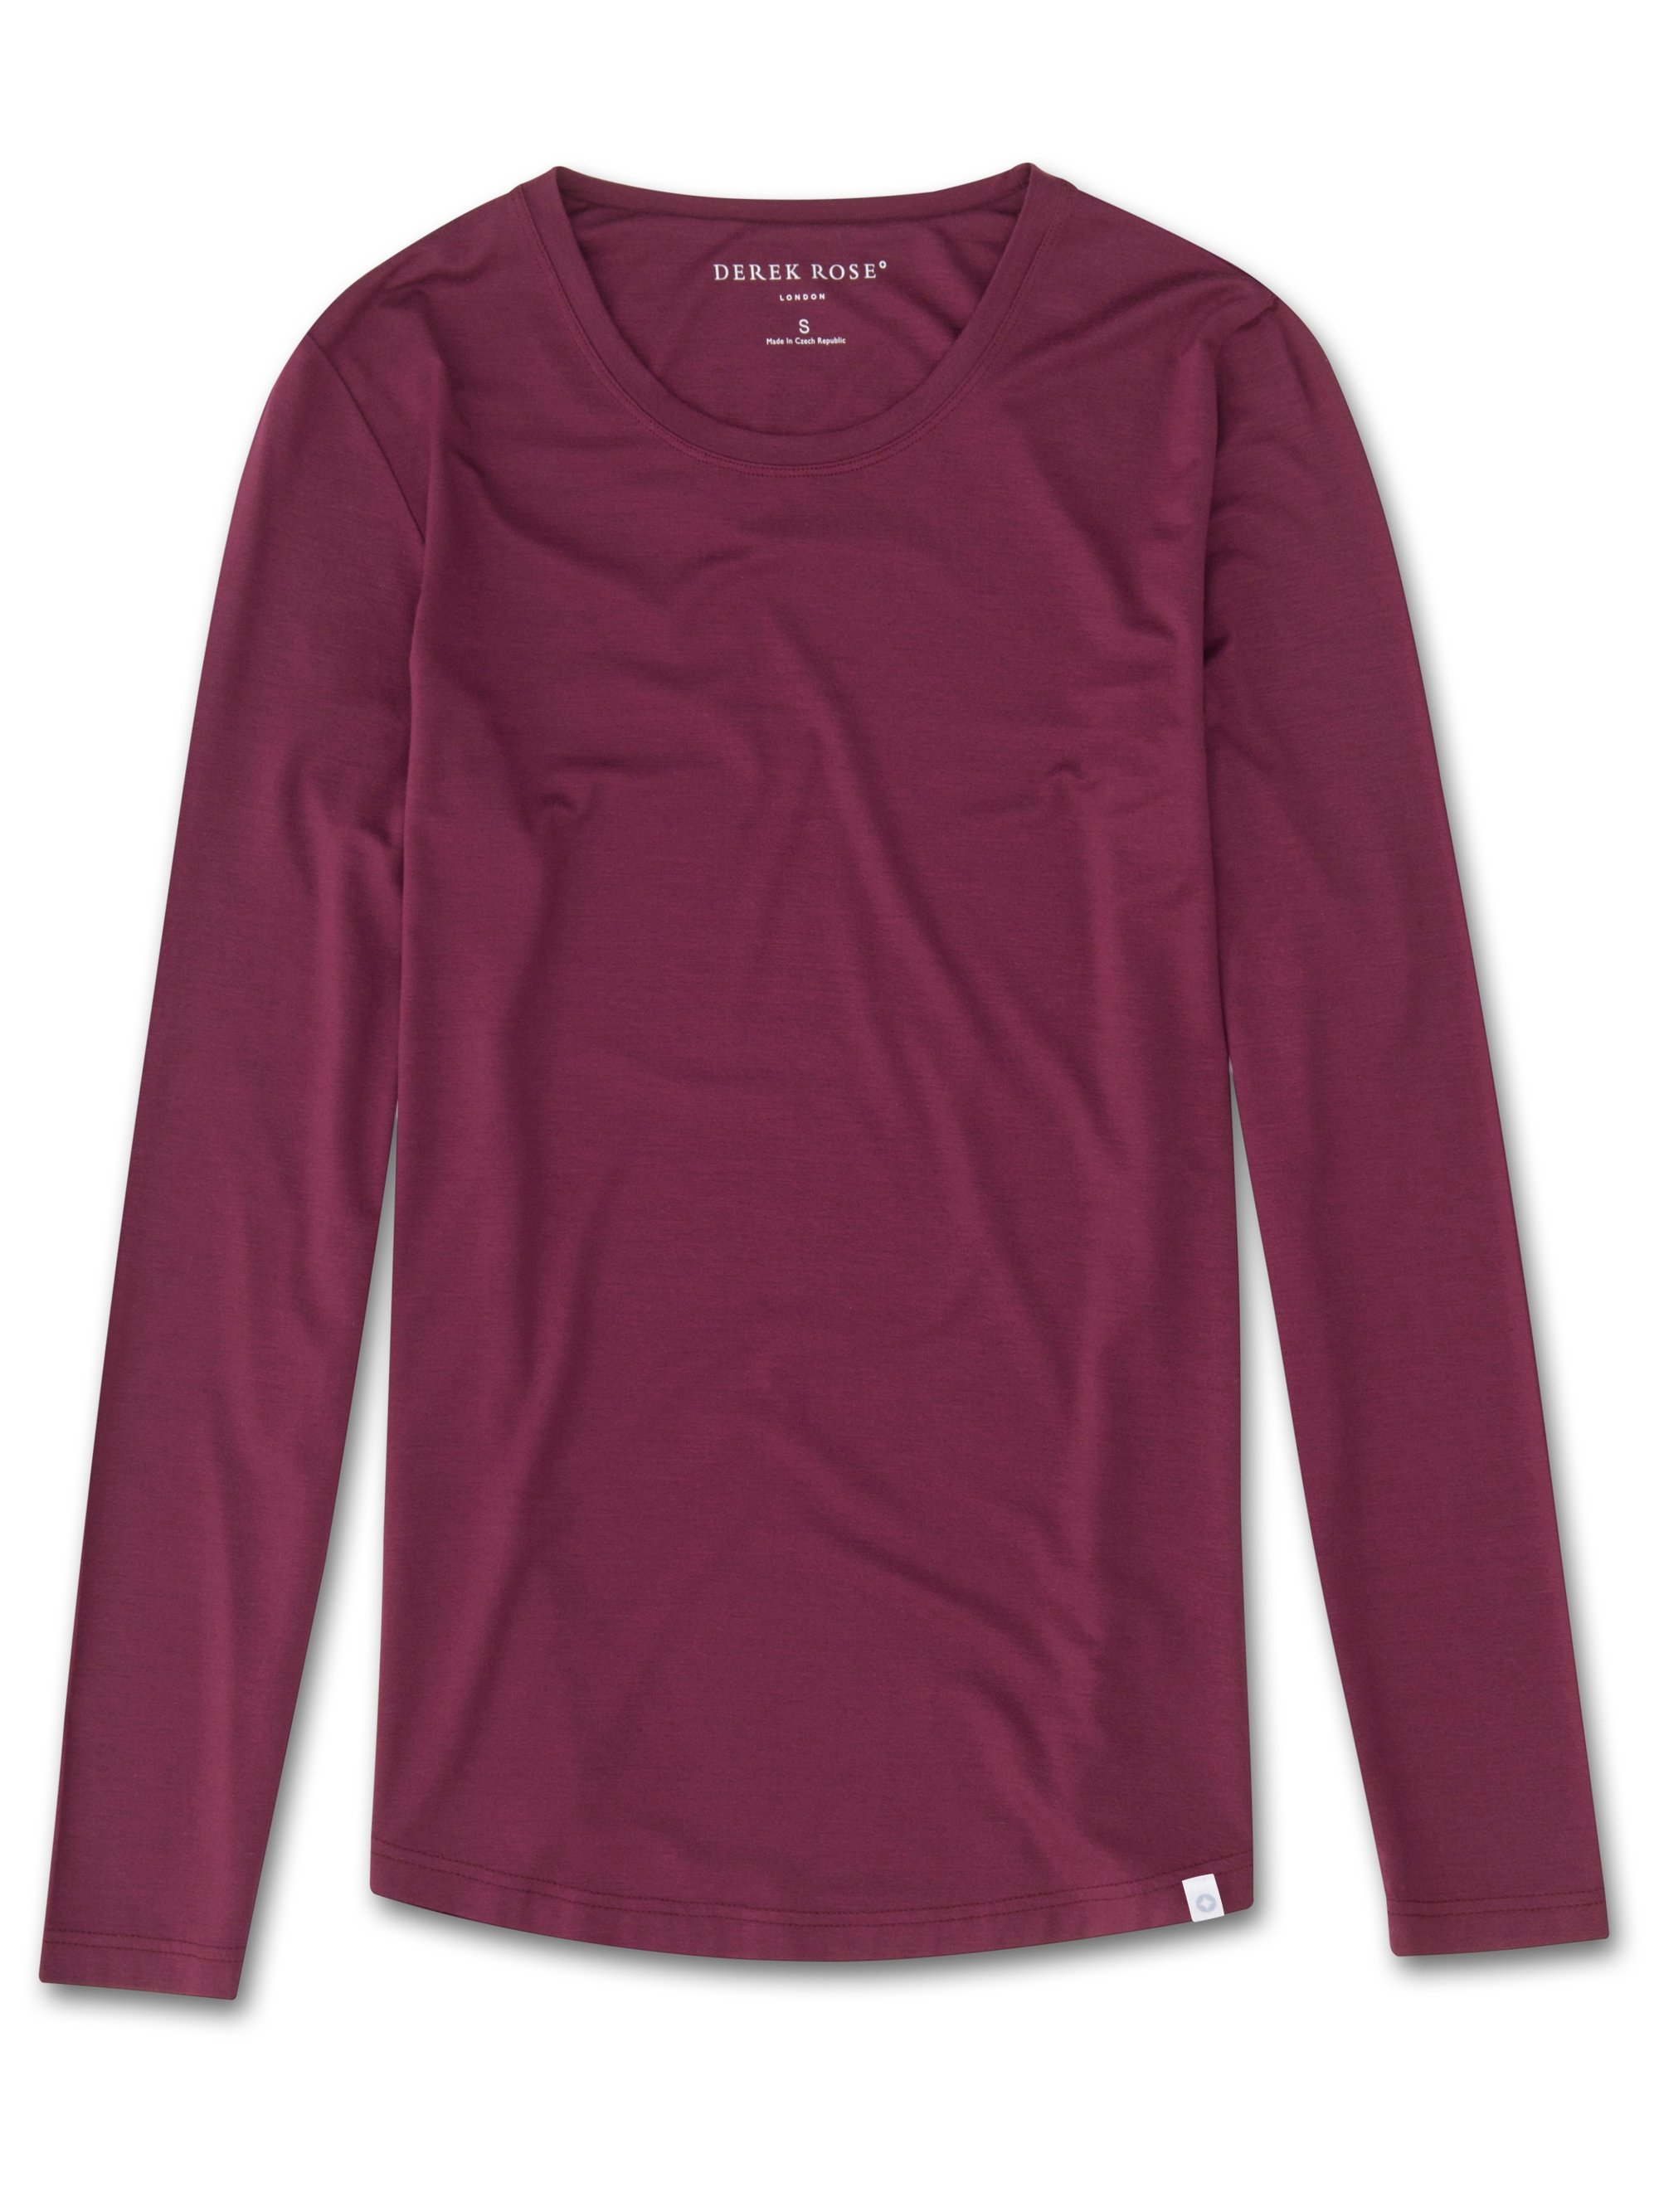 Women's Long Sleeve T-Shirt Carla 4 Micro Modal Stretch Burgundy